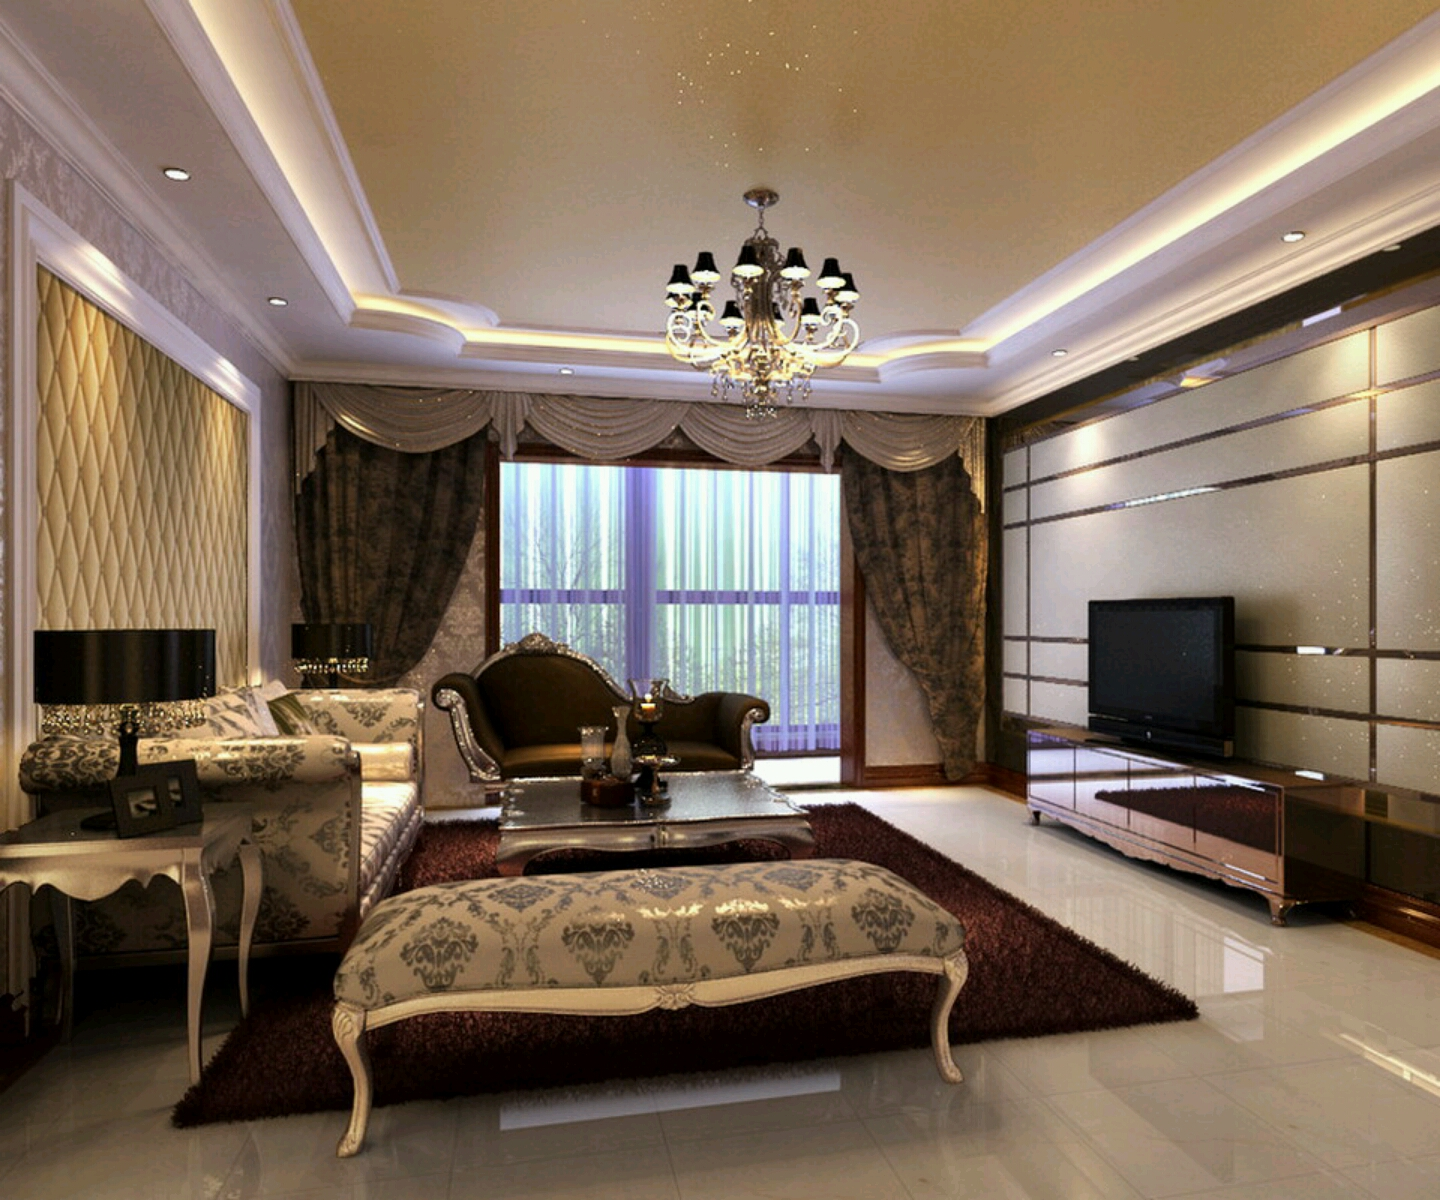 New home designs latest luxury homes interior decoration for House living room interior design